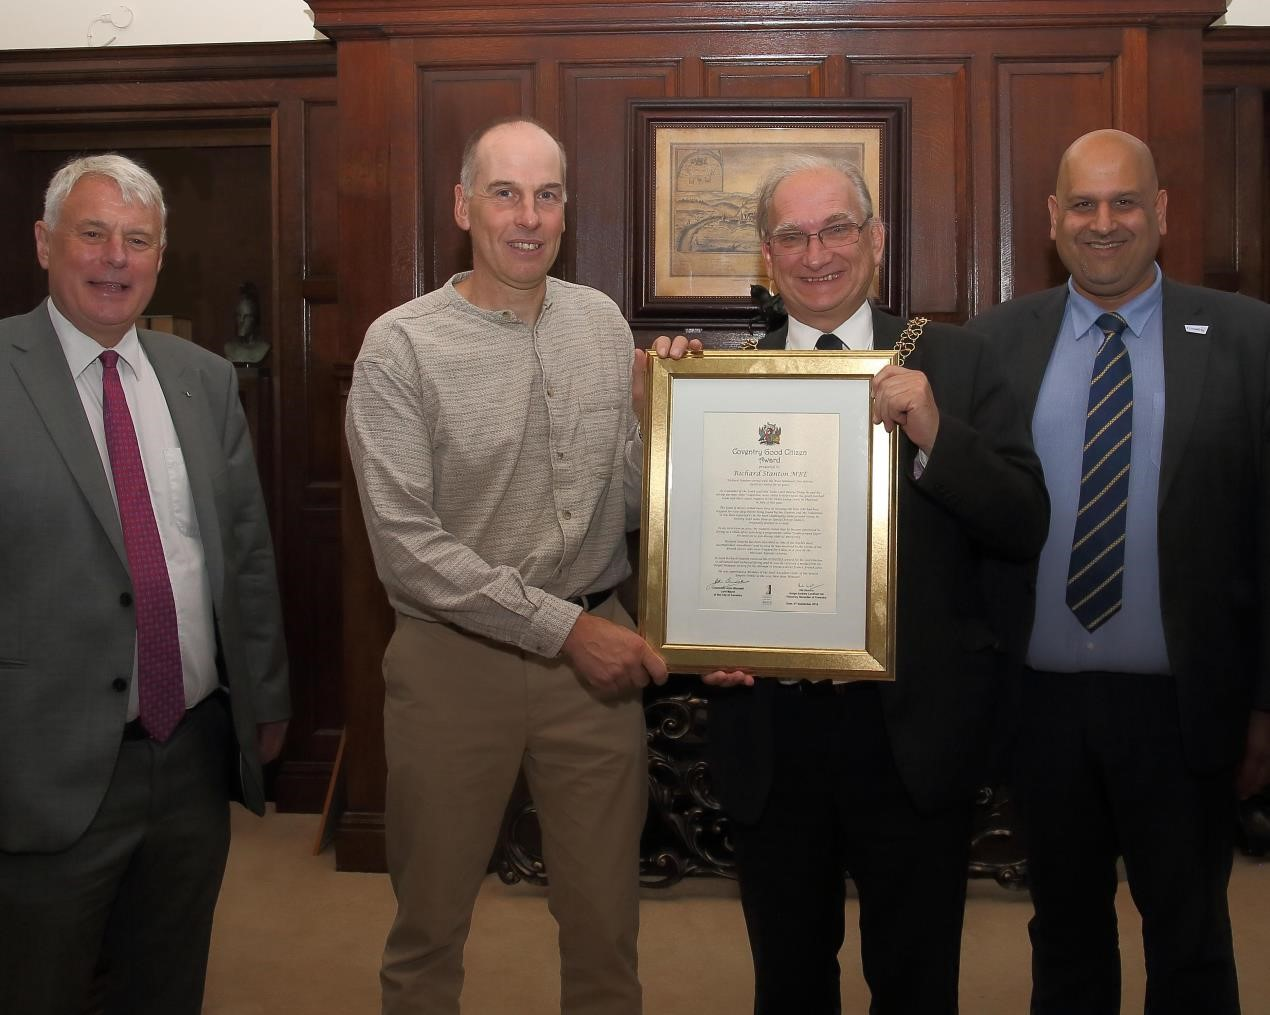 Rick Stanton receives his Good Citizen Award